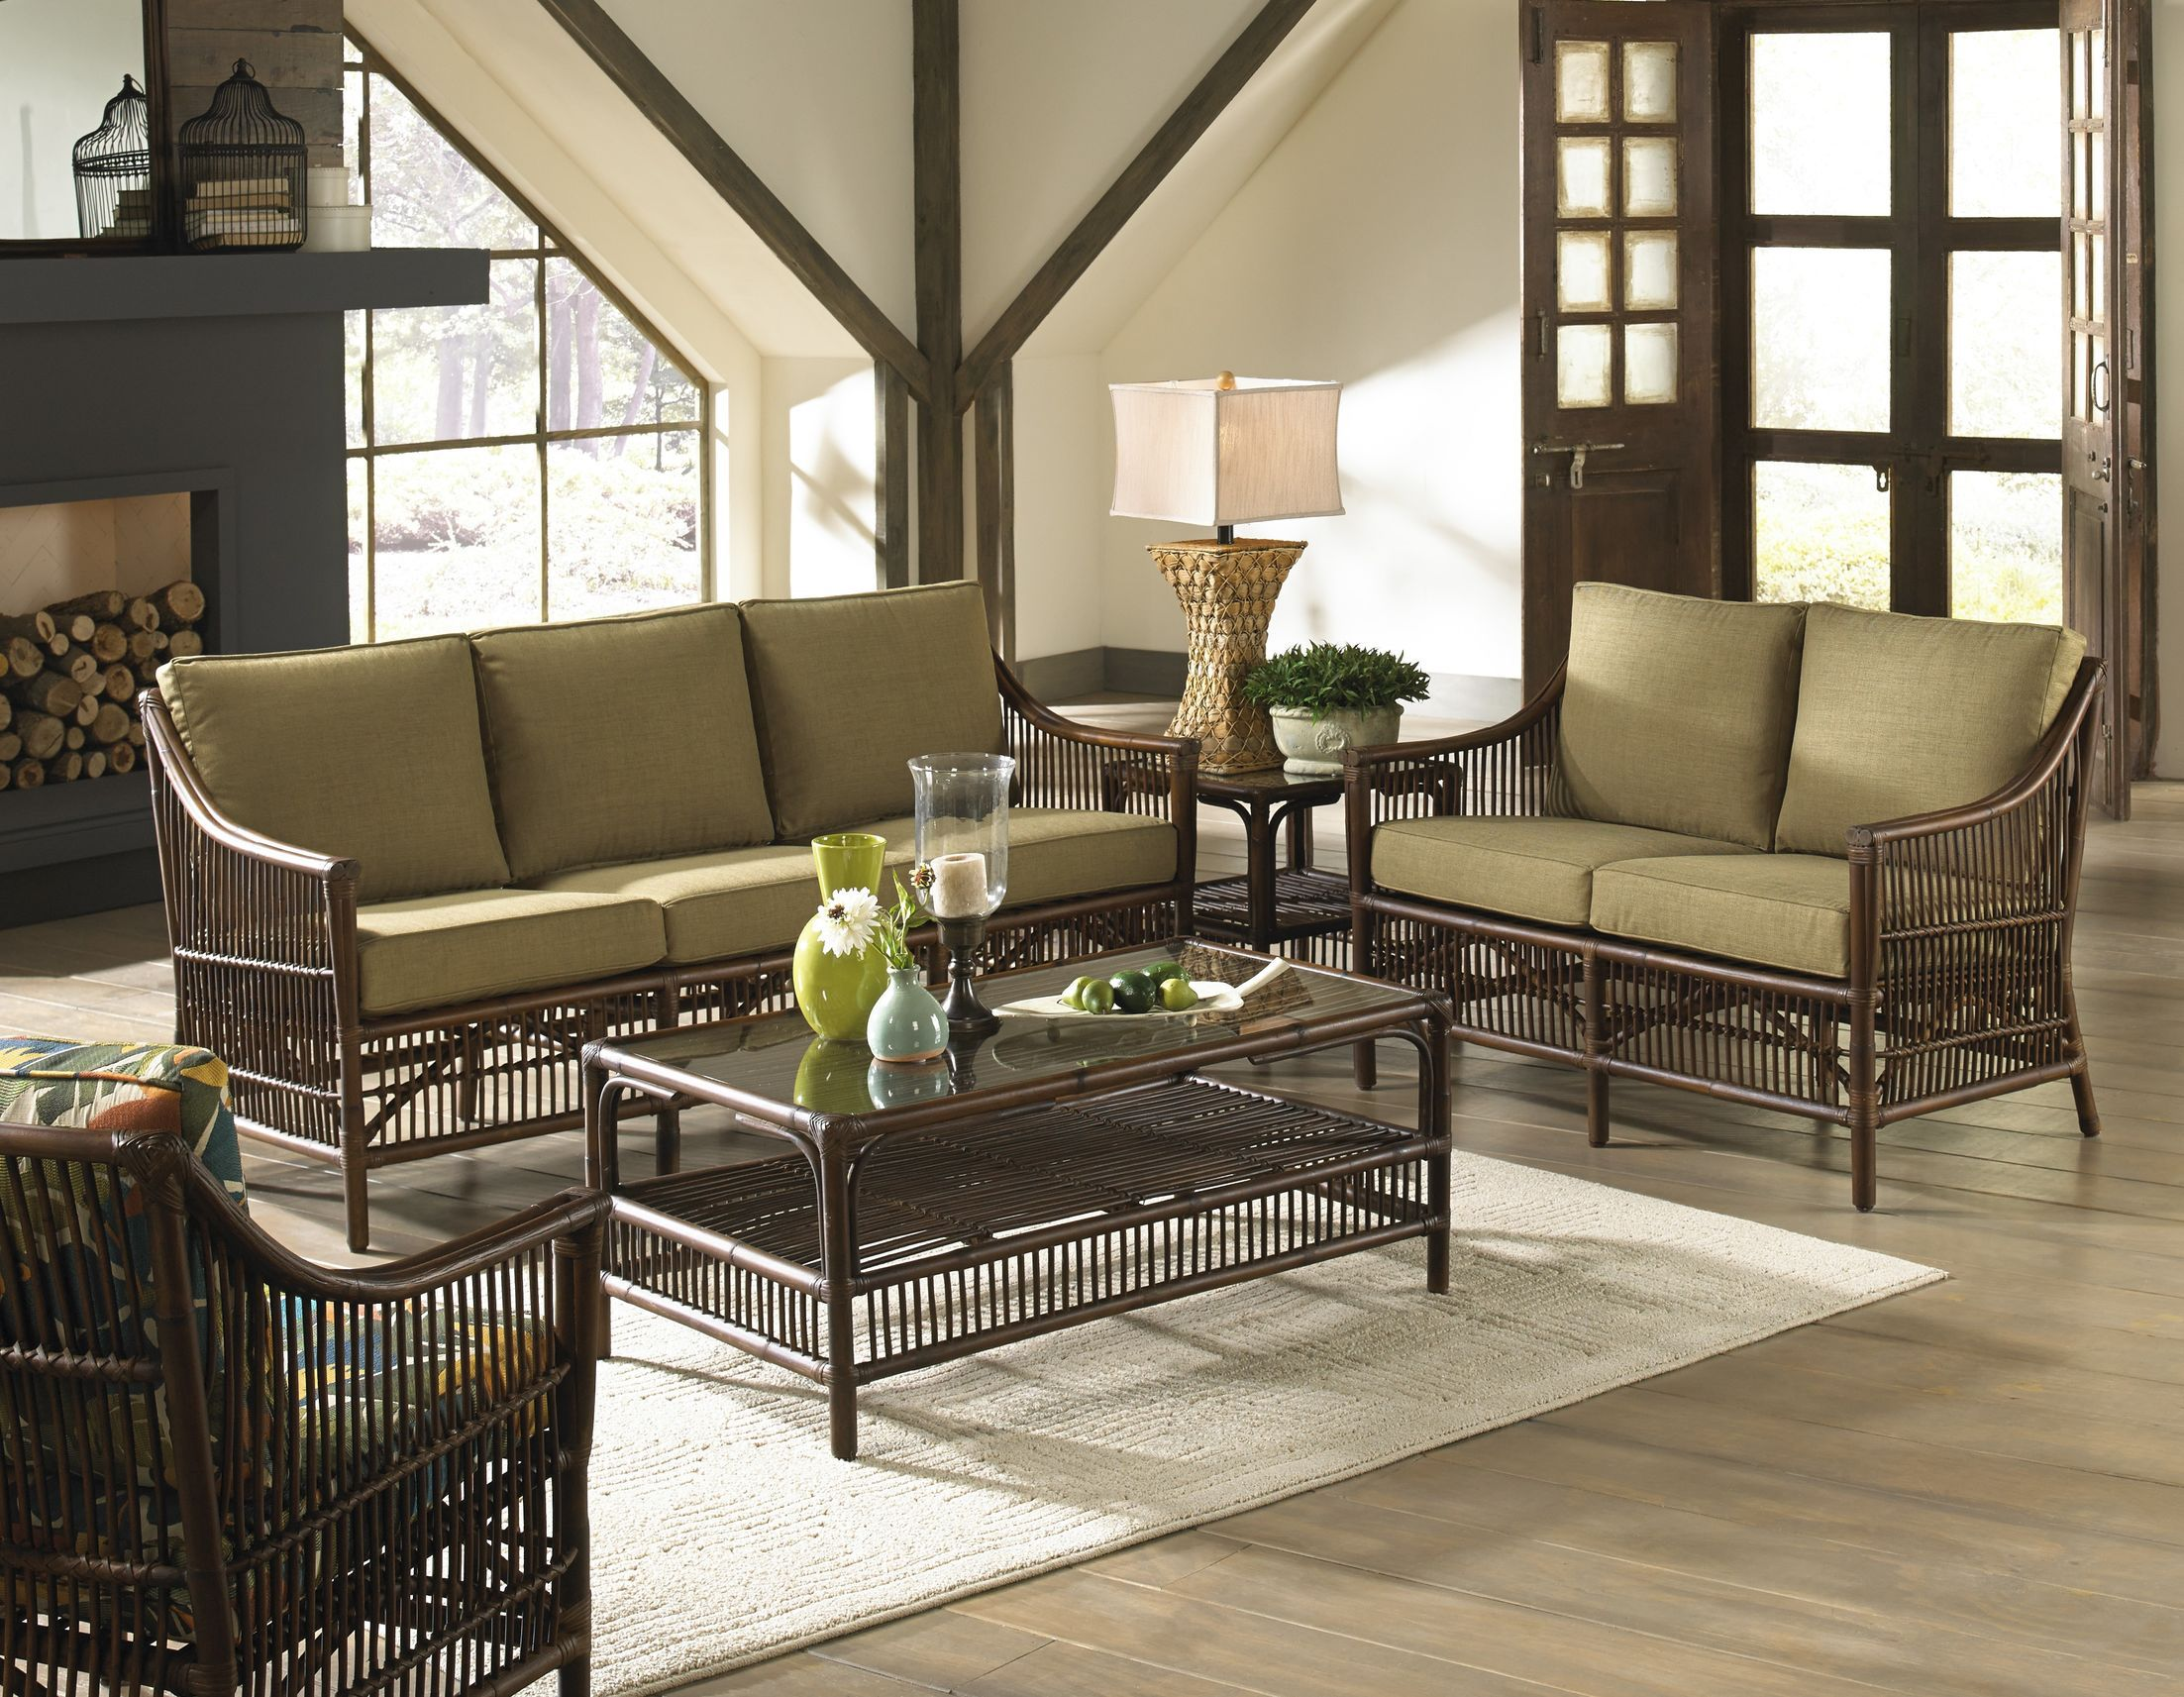 Luxury Panama Jack Sunroom Furniture